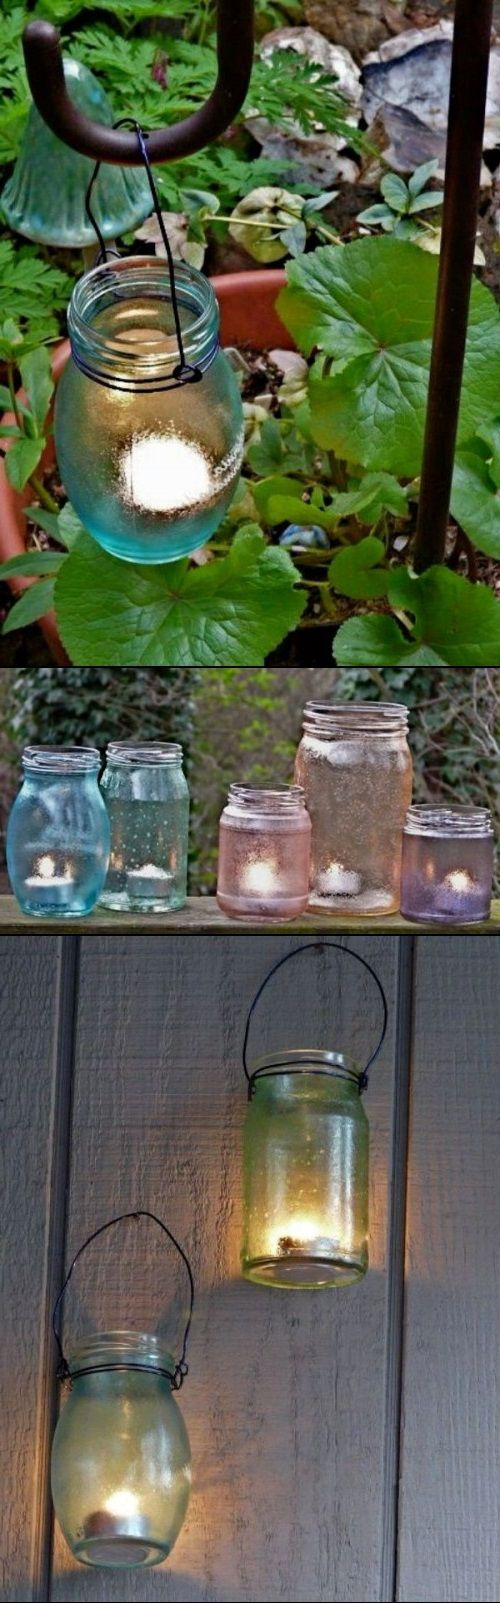 DIY Garden Candle Holders Of Jars.  I recently saw this done with the battery candles and it looked really cute and safe around children.